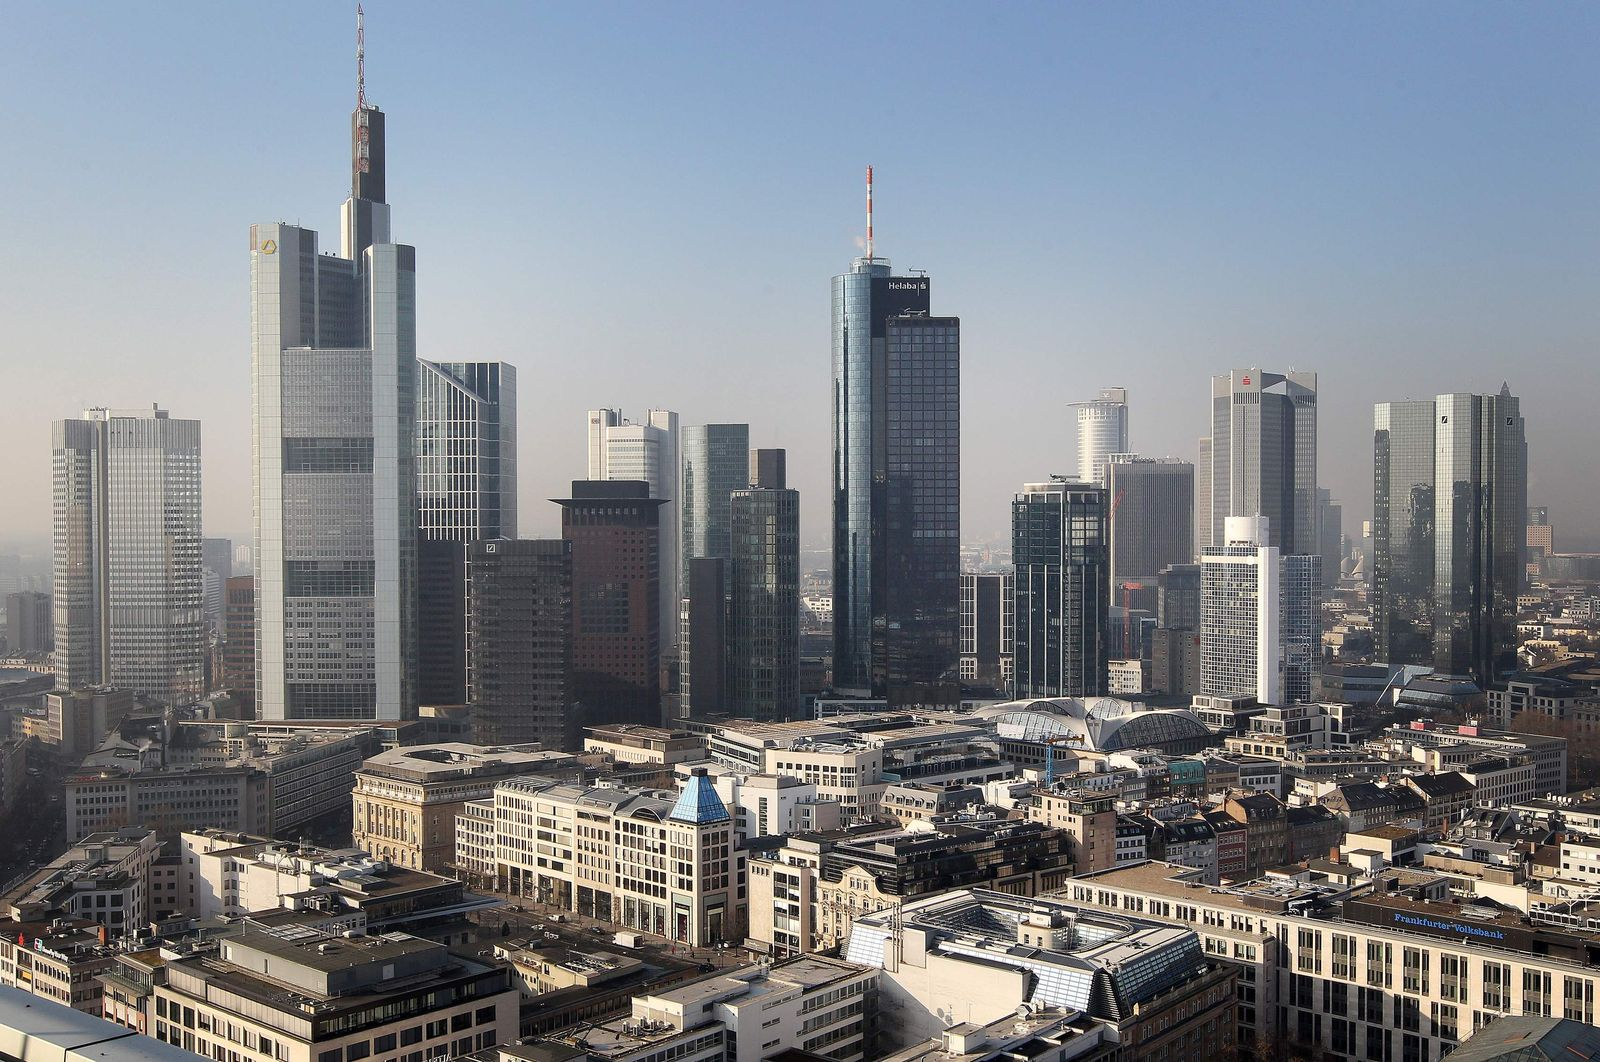 FILES-GERMANY-FRANKFURT-FINANCE-FEATURE